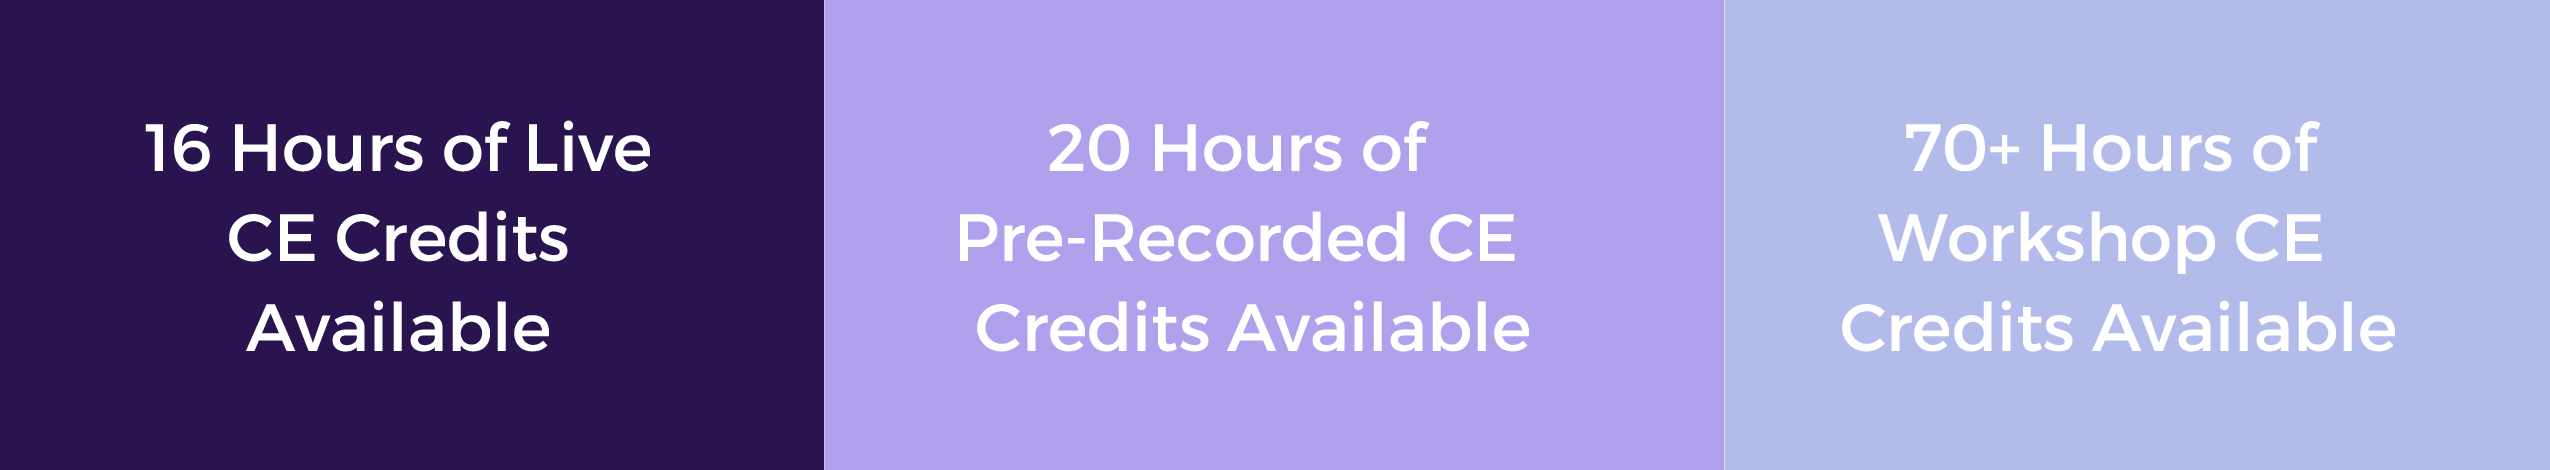 16 Hours of Live CE Credits Available, 20 Hours of Pre-Recorded CE Credits Available, 70+ Hours of Workshop CE Credits Available.